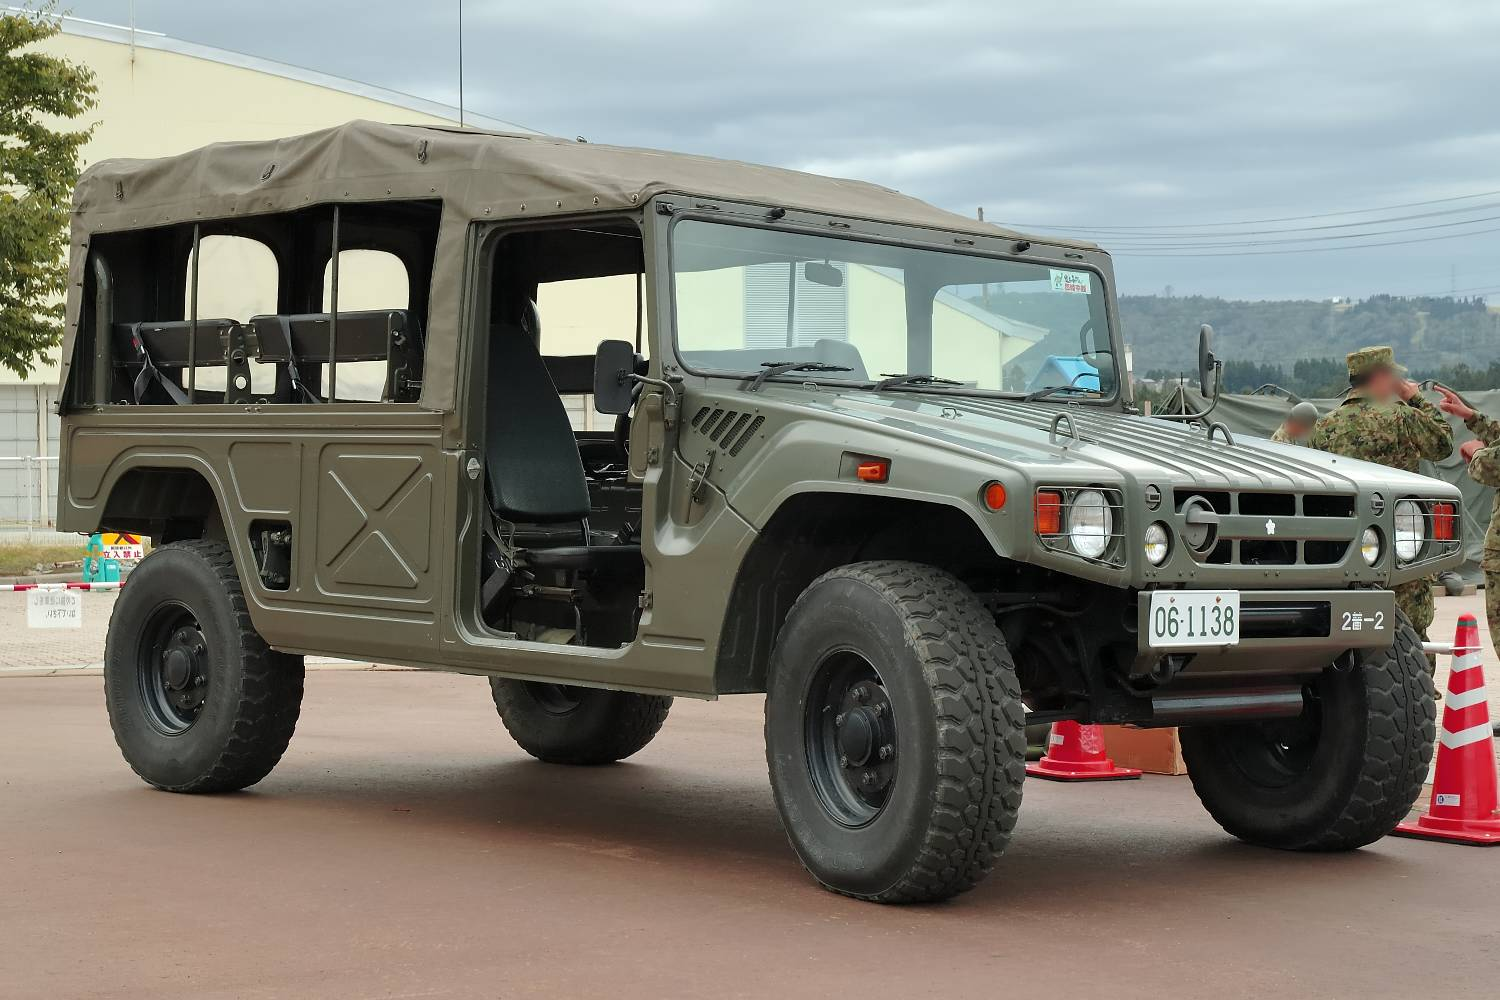 Based on the American HMMWV, this Japanese Koukidsousha is a typical light truck. Note the aesthetic similarity to a full size SUV.